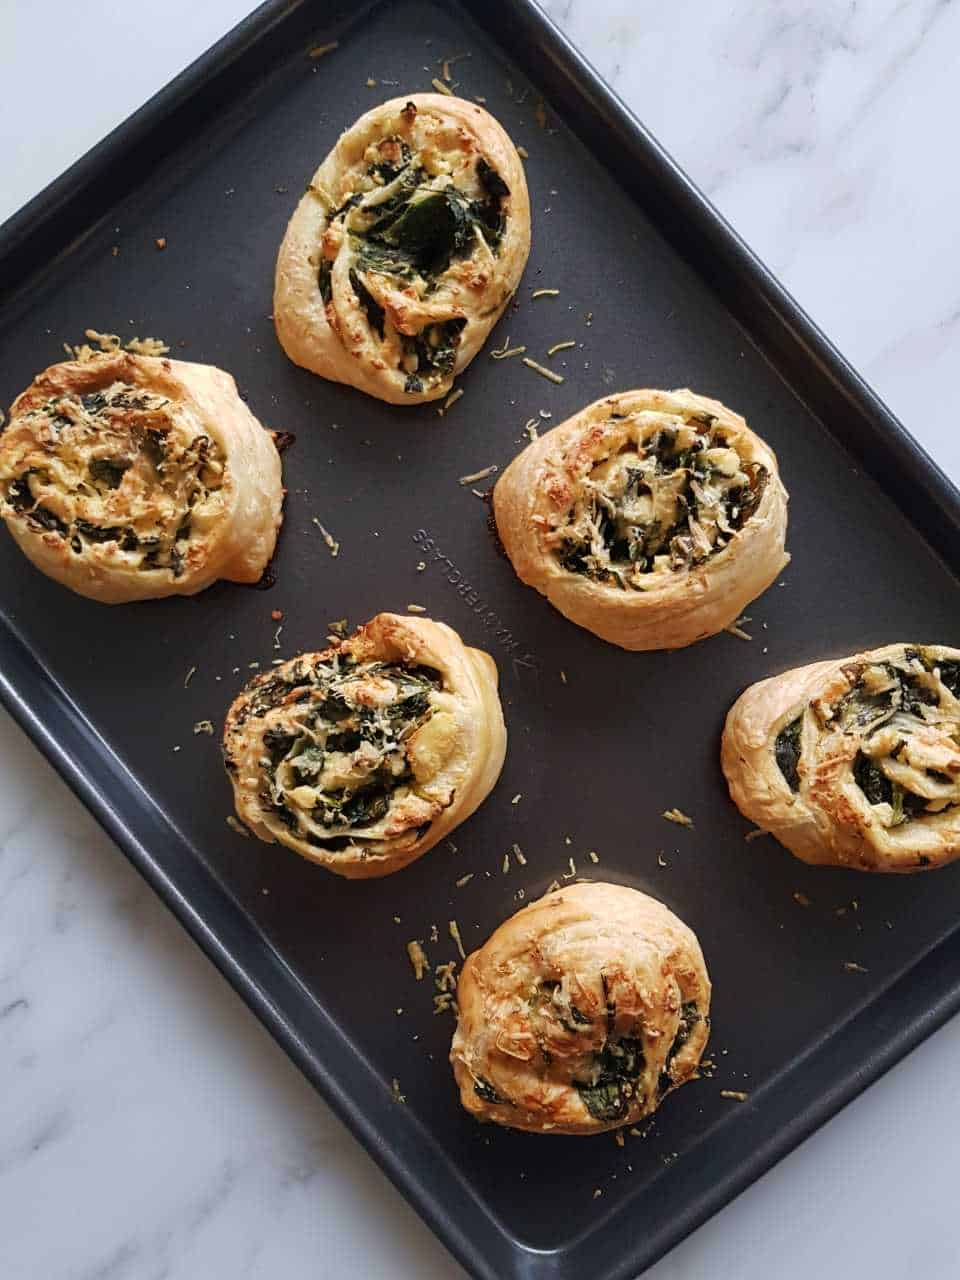 Spinach and feta puff pastry pinwheels on a baking tray on a marble table.